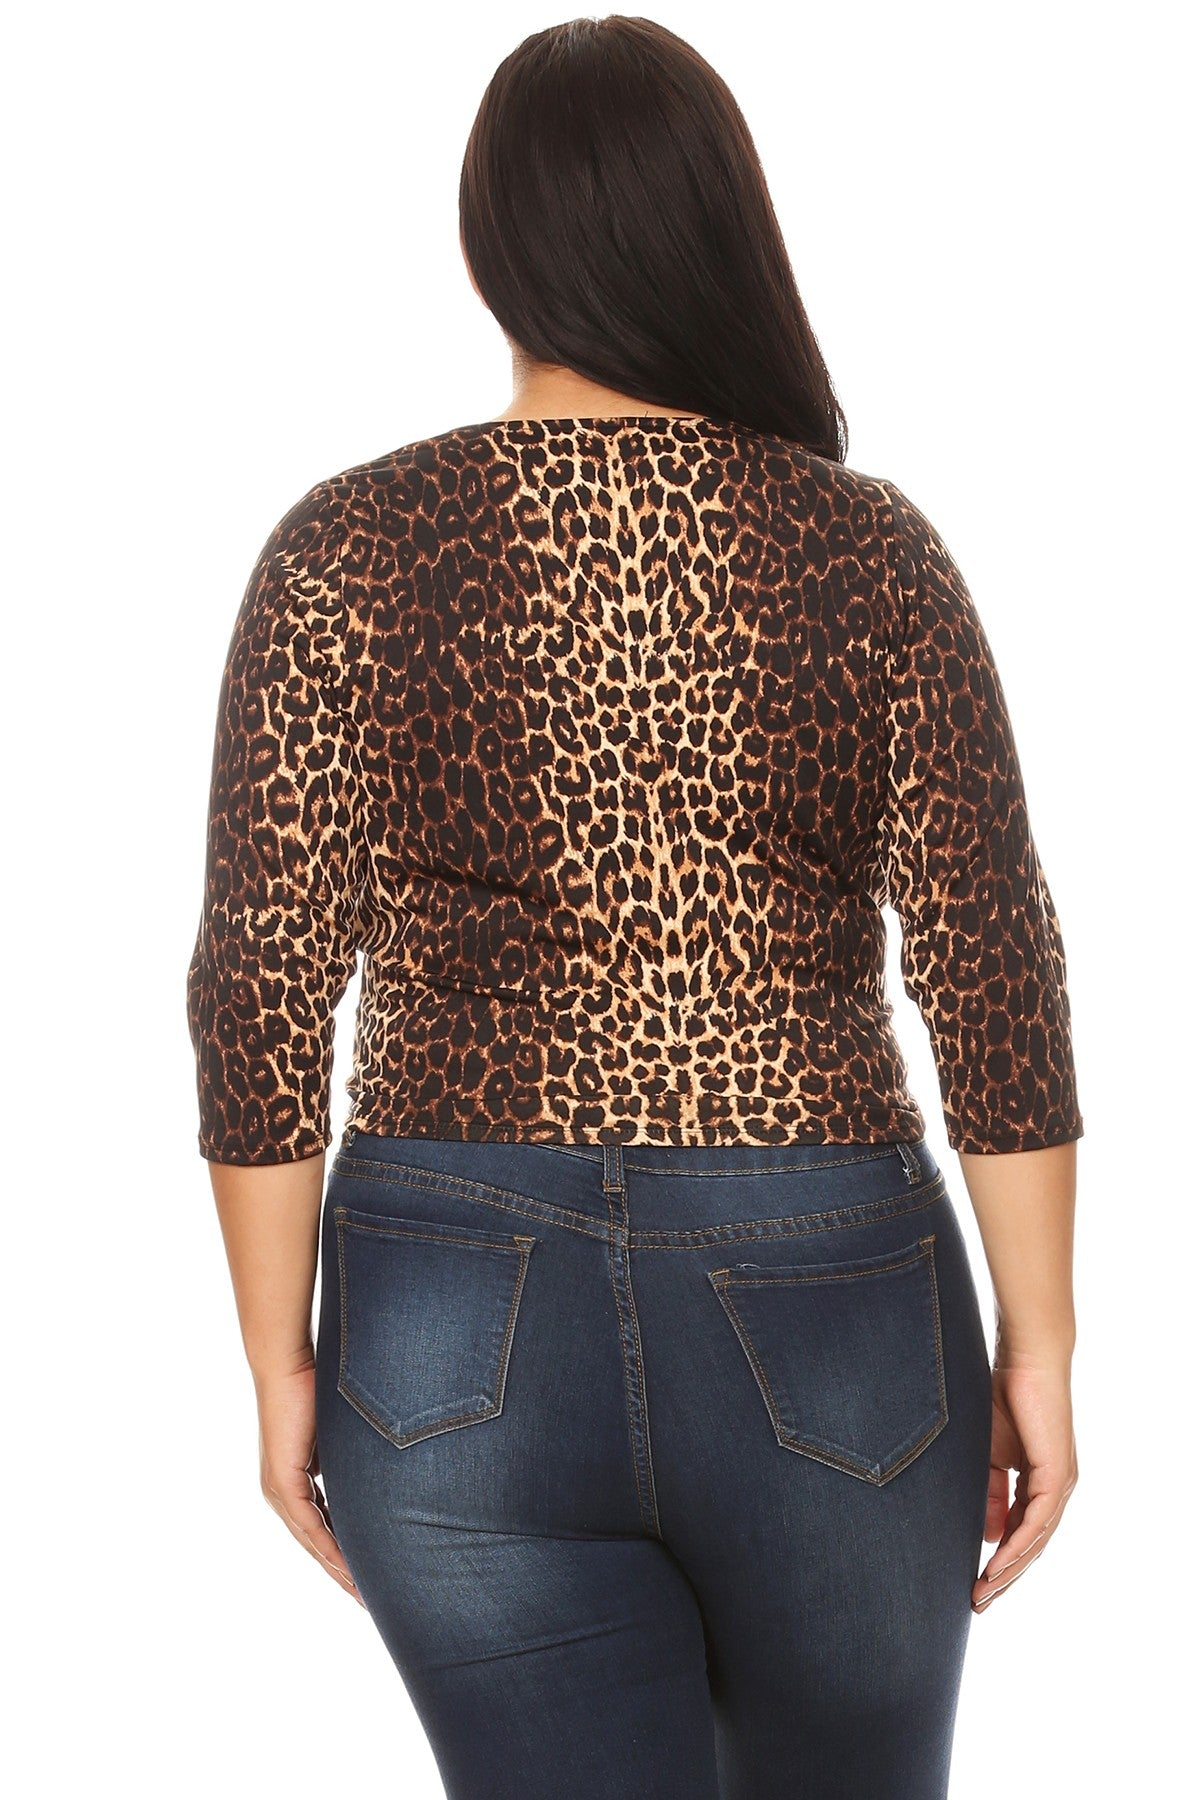 12319-Cheetah Twist Top